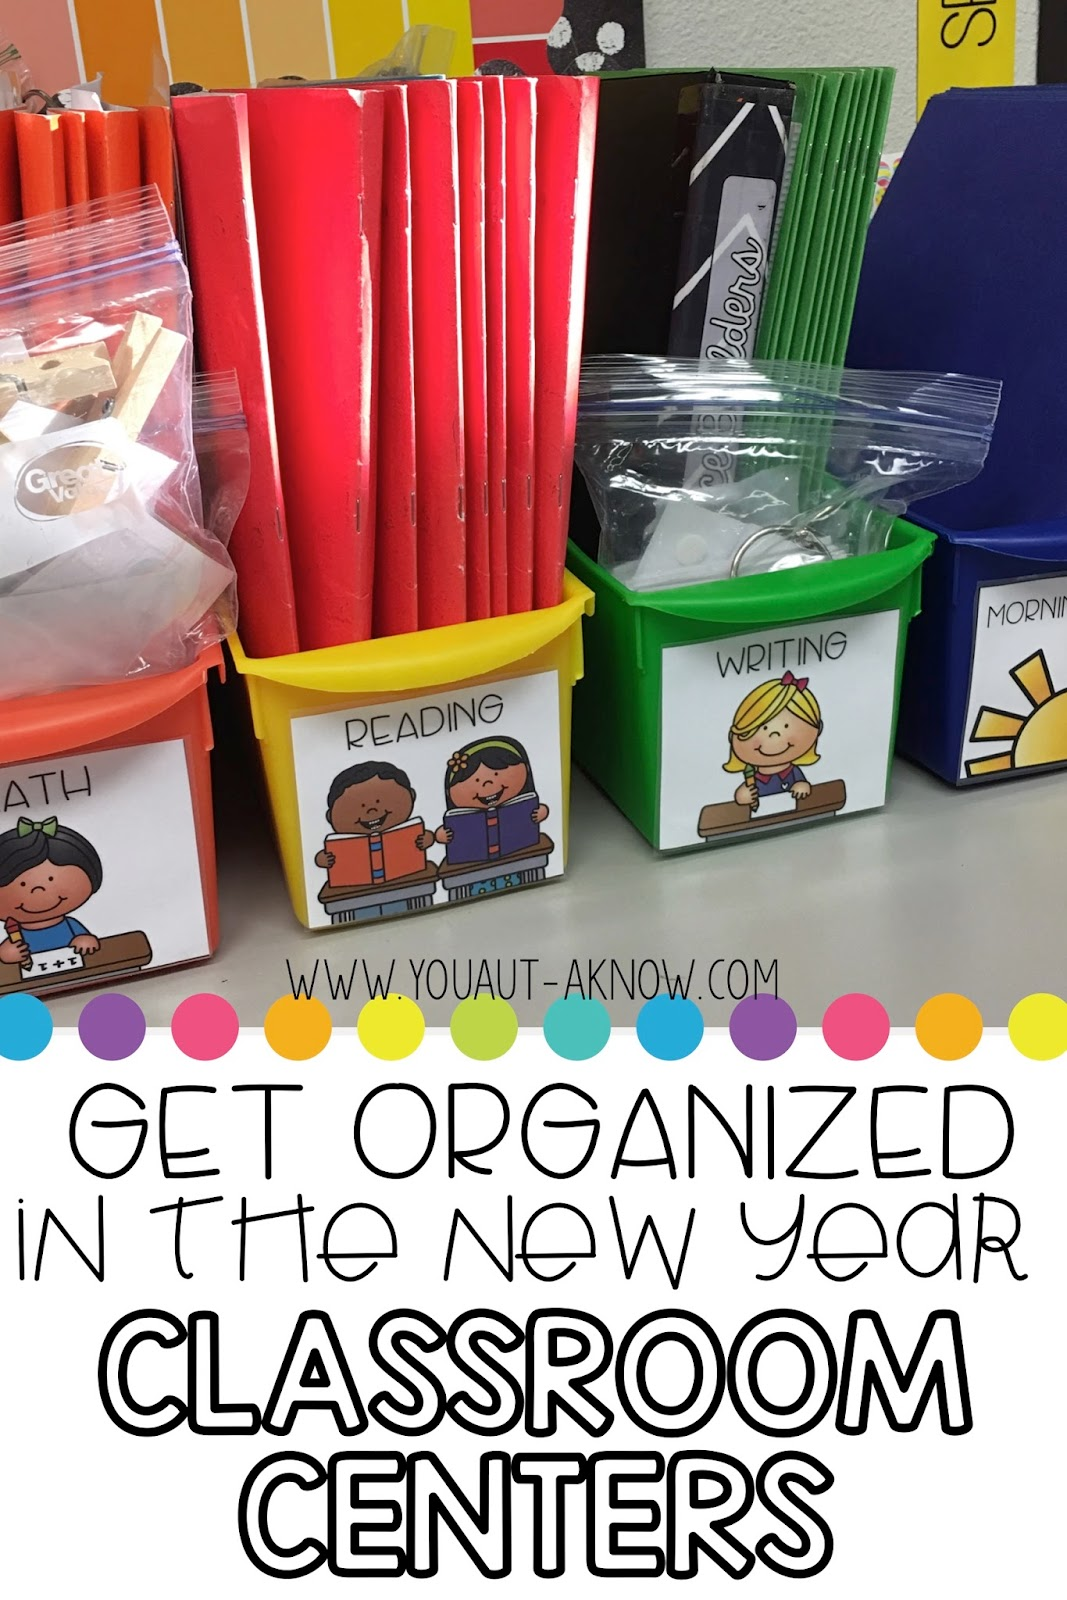 Get your classroom organized in the new year. Special education centers are a breeze when you have an efficient organization system for all the things!